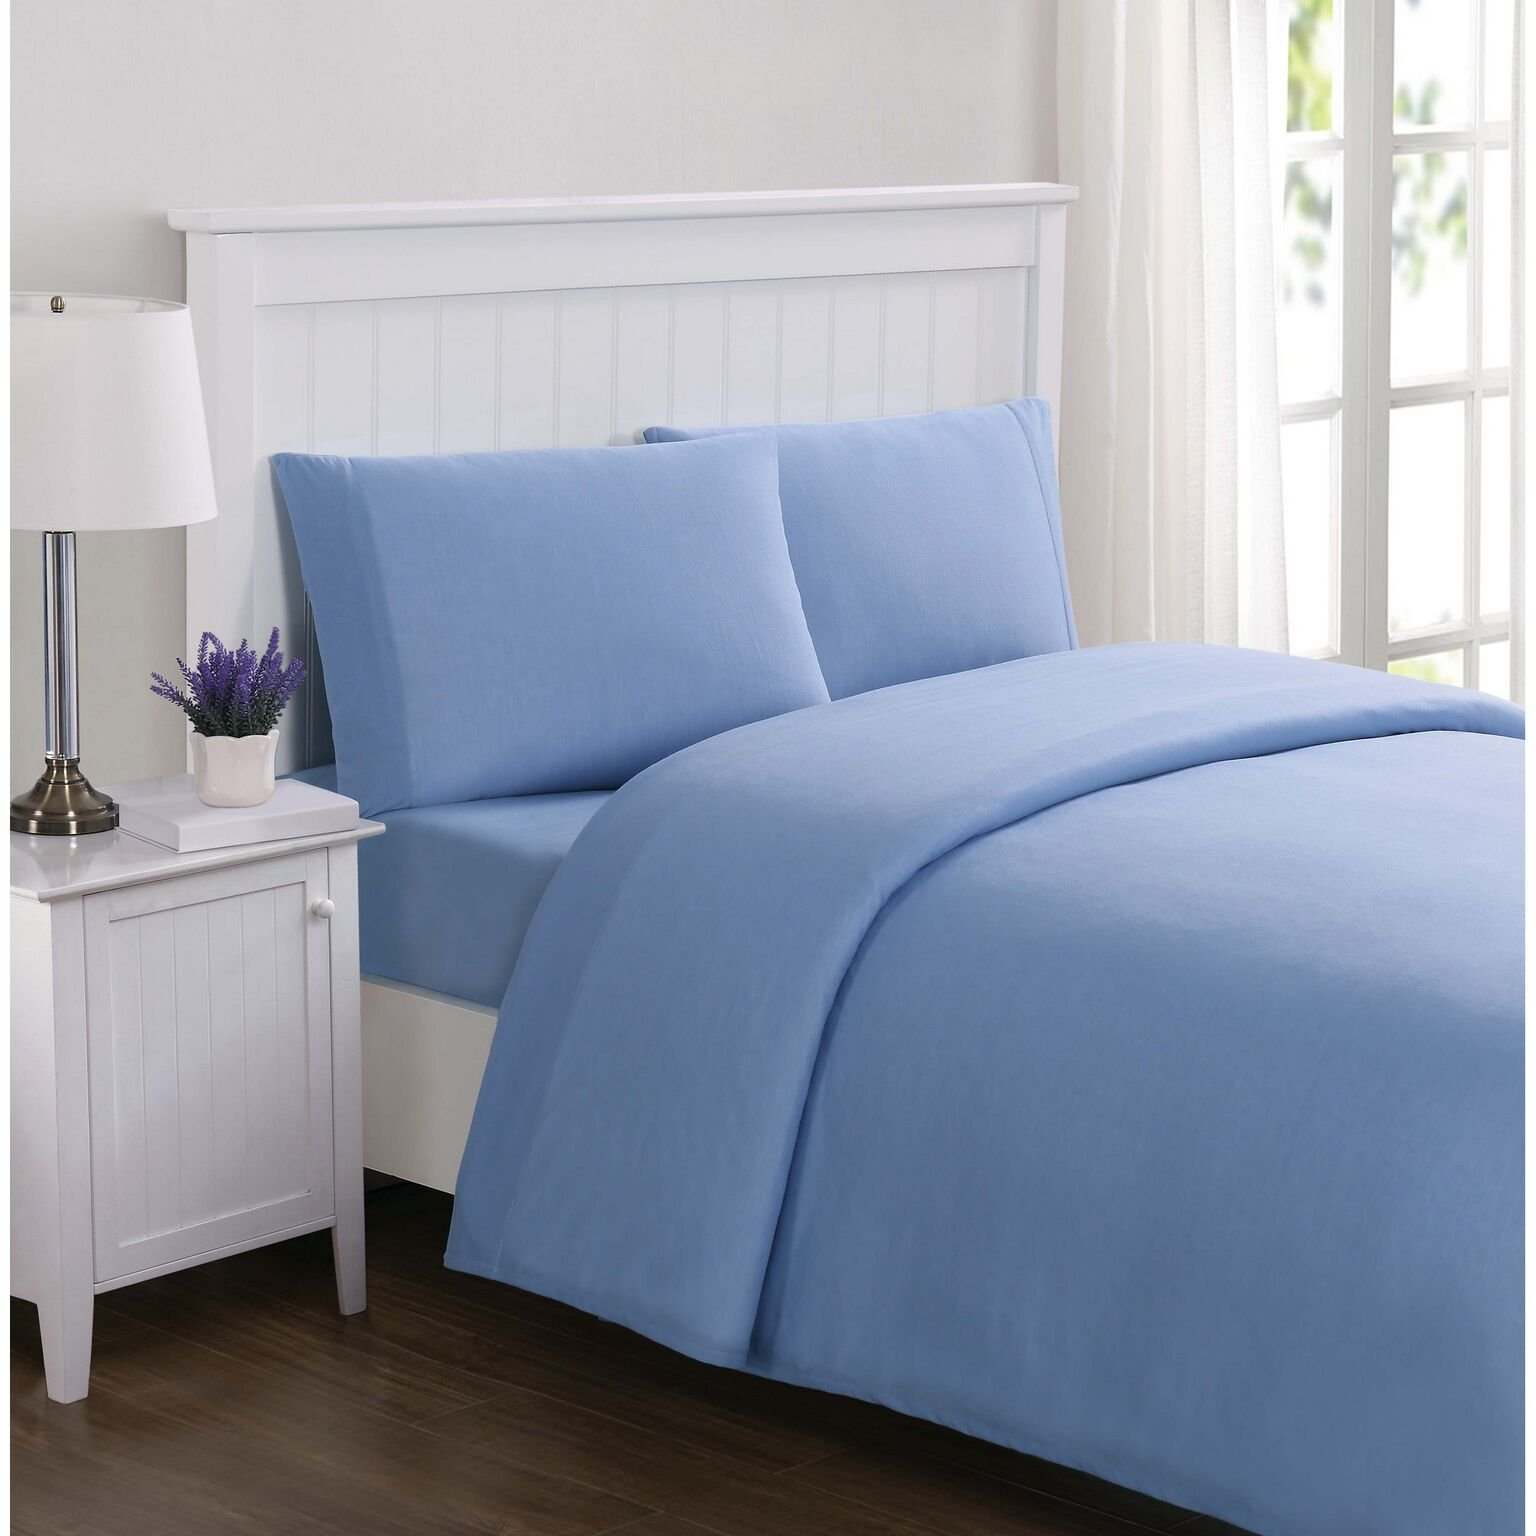 Truly Soft Solid Jersey XL Sheet Set, Twin X-Large, Blue